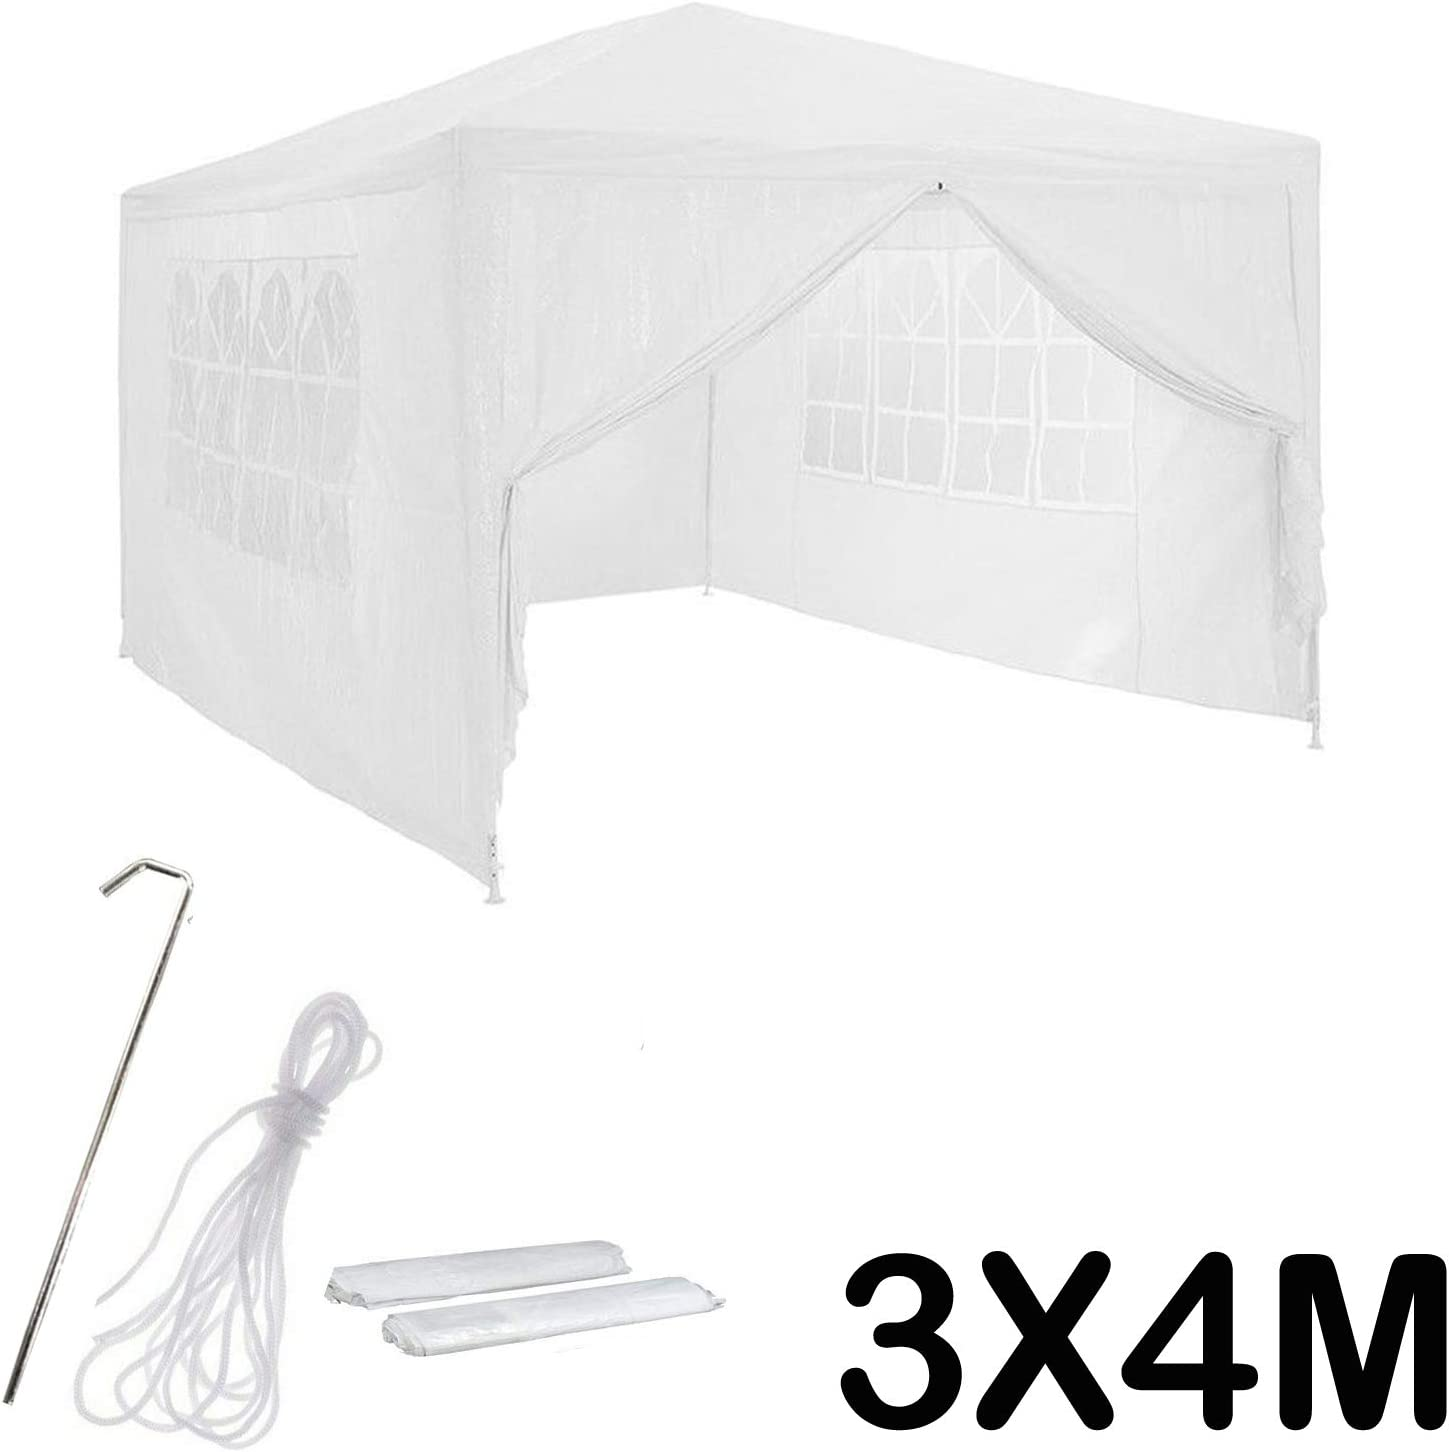 DICN 3x4m Party Tent Gazebo with Side Panels White 120g PE Cover Waterproof Marquee Powder Coated Steel Frame for Events Camping Garden Festival